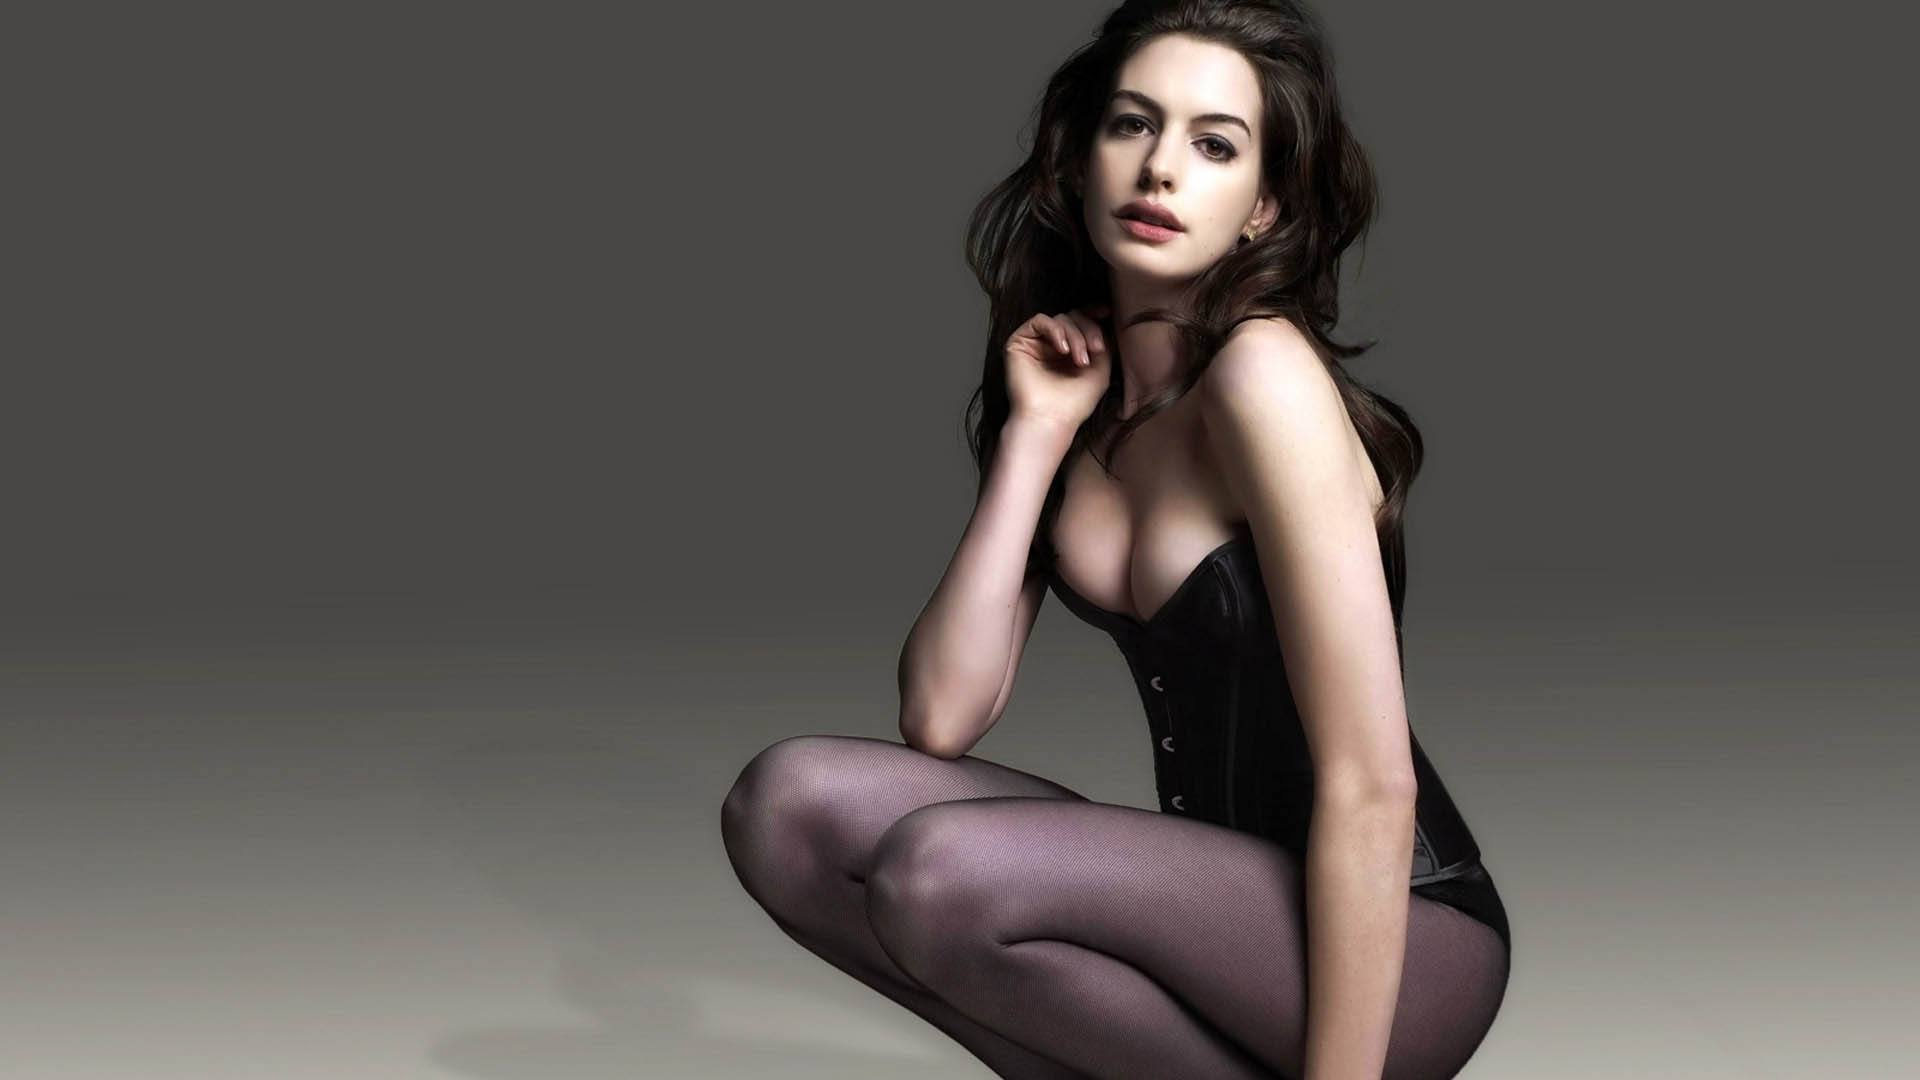 Anne Hathaway Sexy Cleavage Photos   Glamourous Photoshoot Images